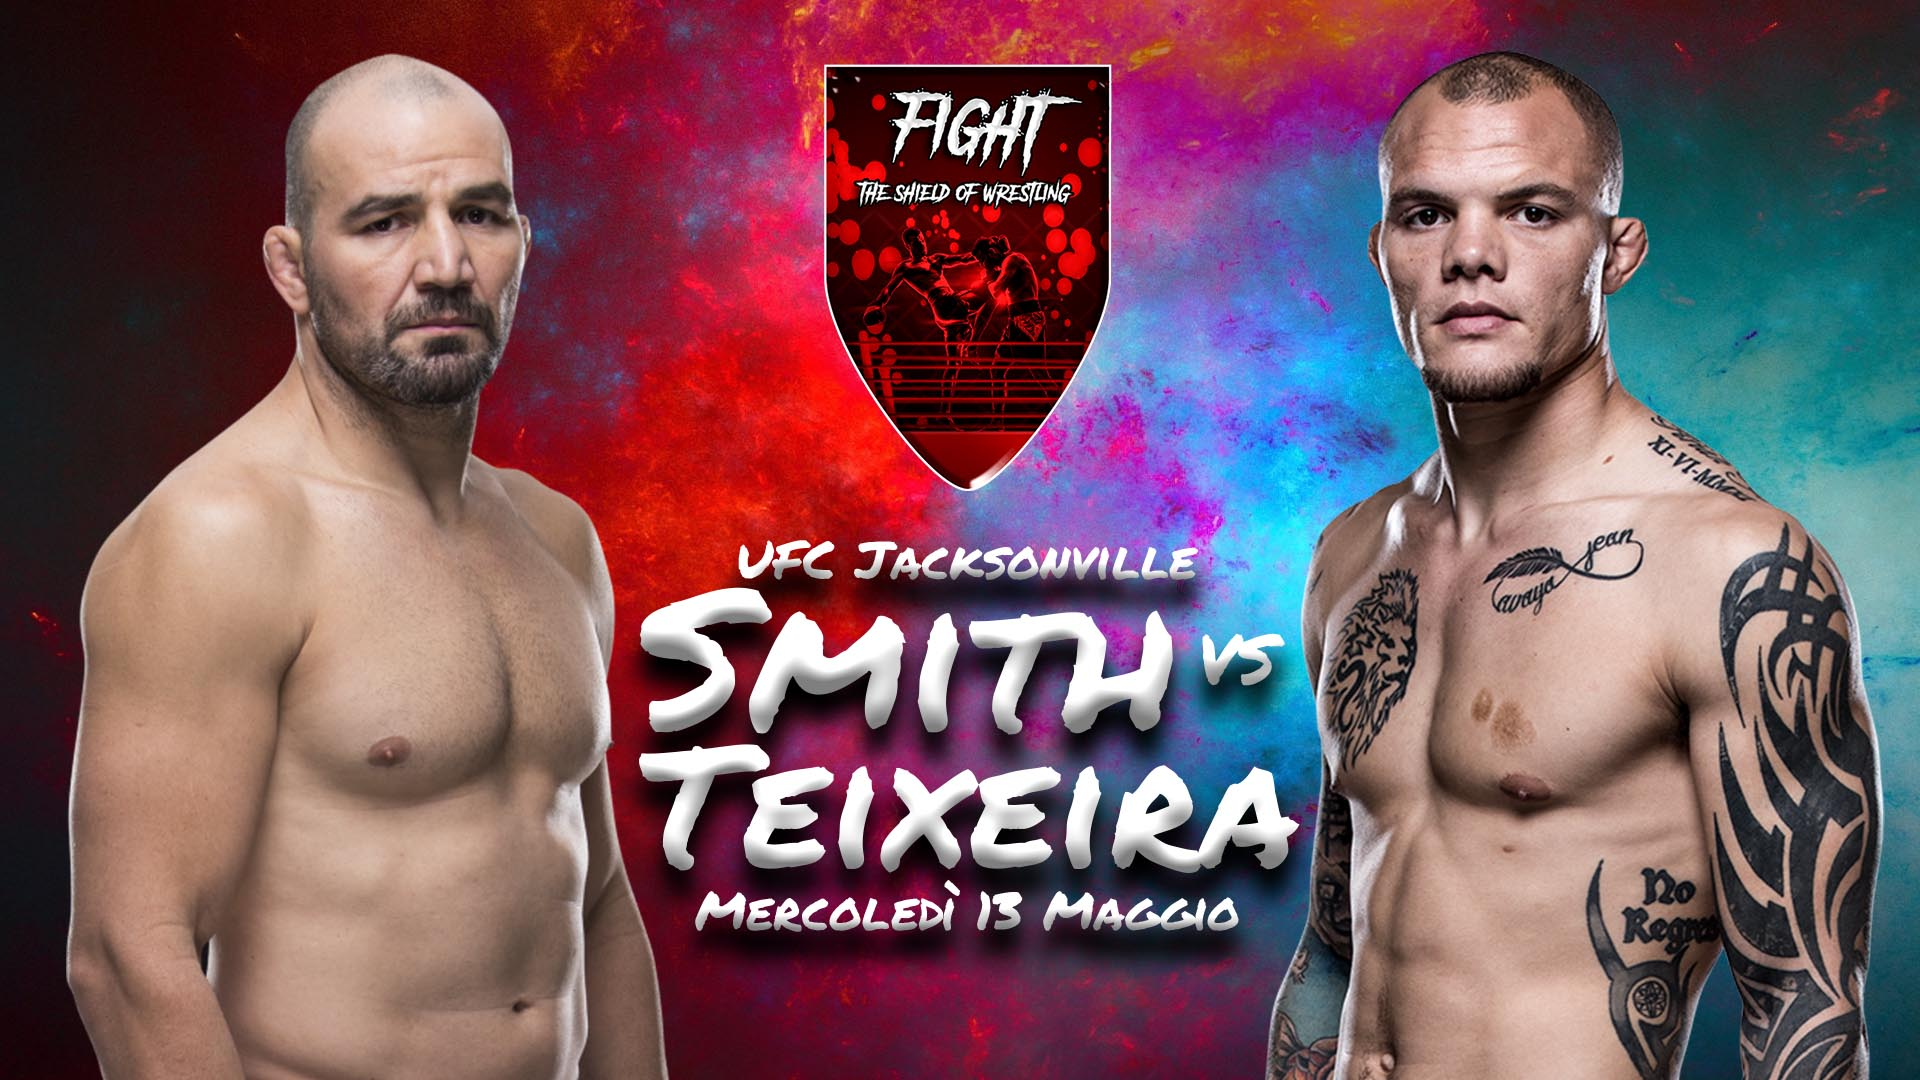 UFC Fight Night: Teixeira vs Smith risultati live